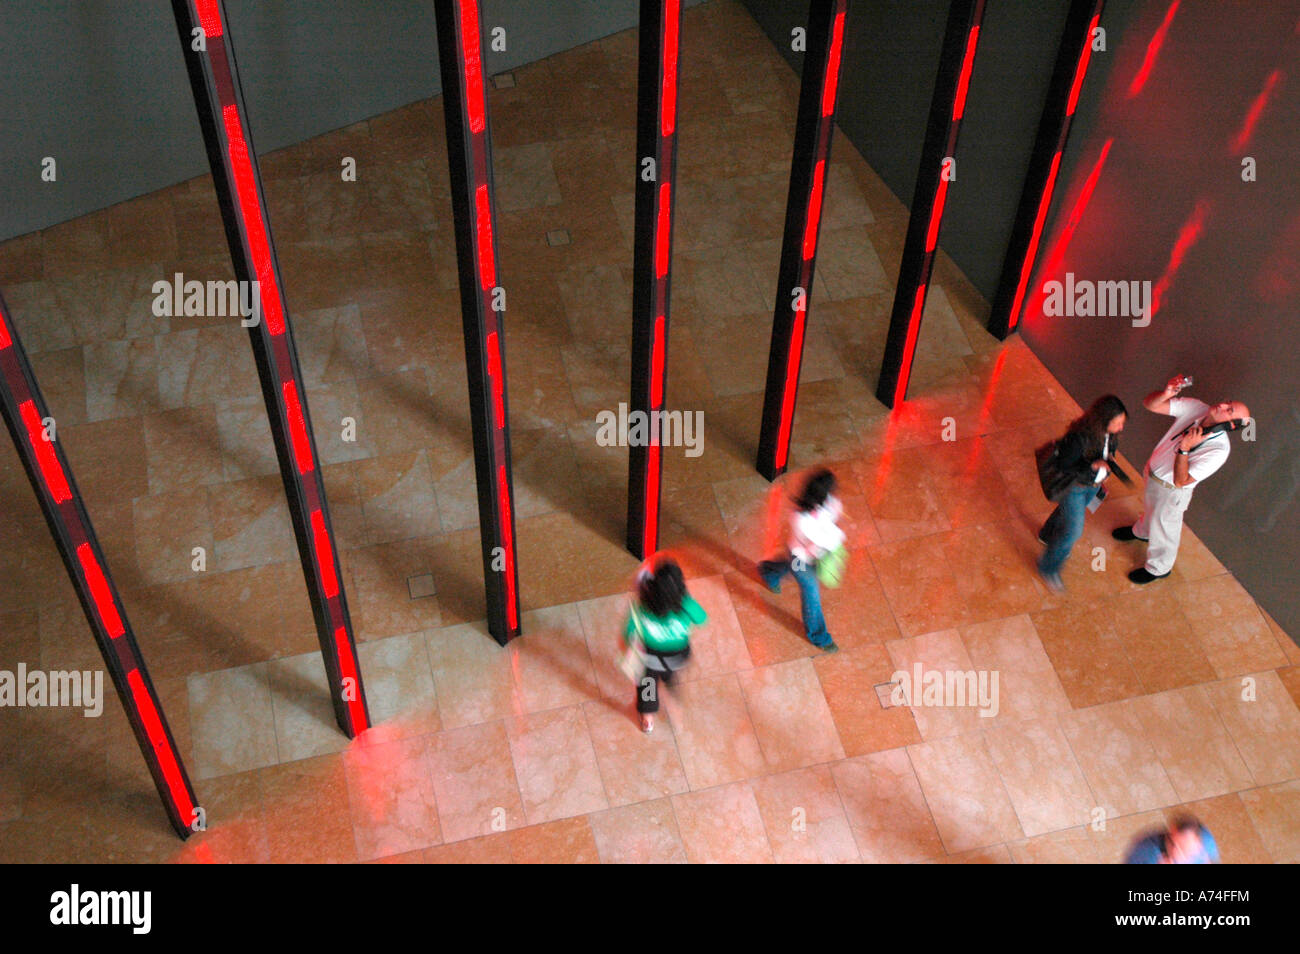 luminous Diodos Jenny Holzer Guggenheim museum BILBAO Biscay Basque Country Spain - Stock Image